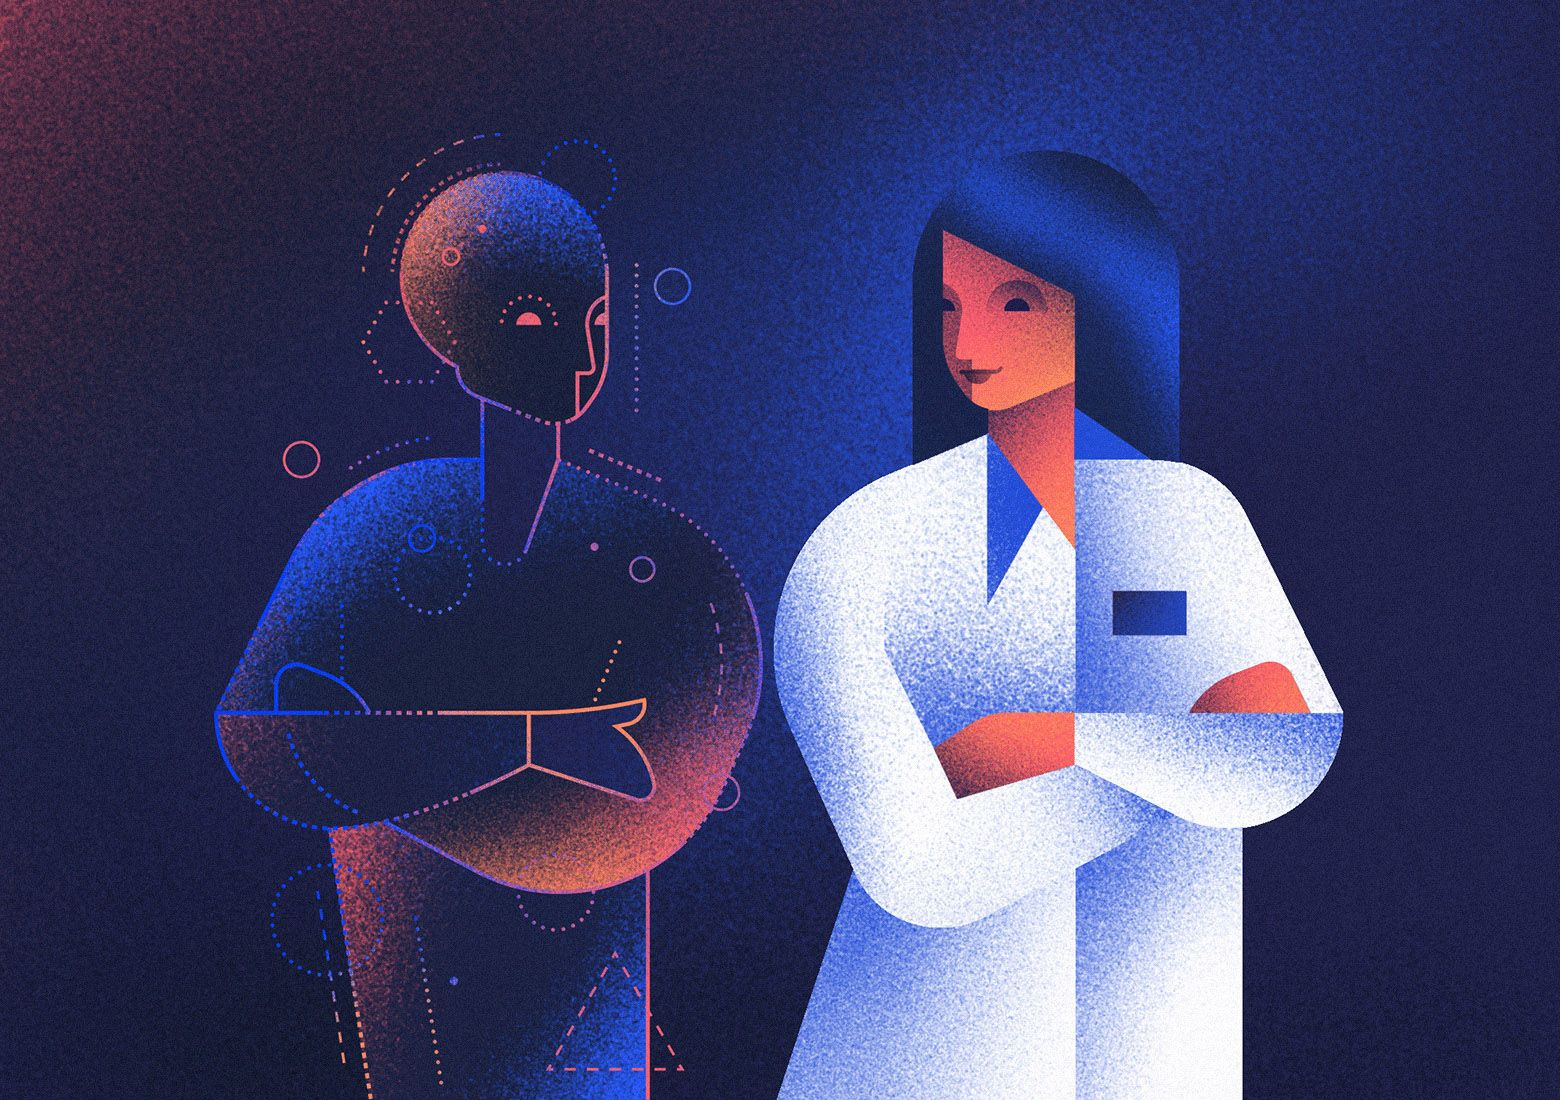 Artificial Intelligence and doctors - can we reconcile them? Illustration by Aga Więckowska.